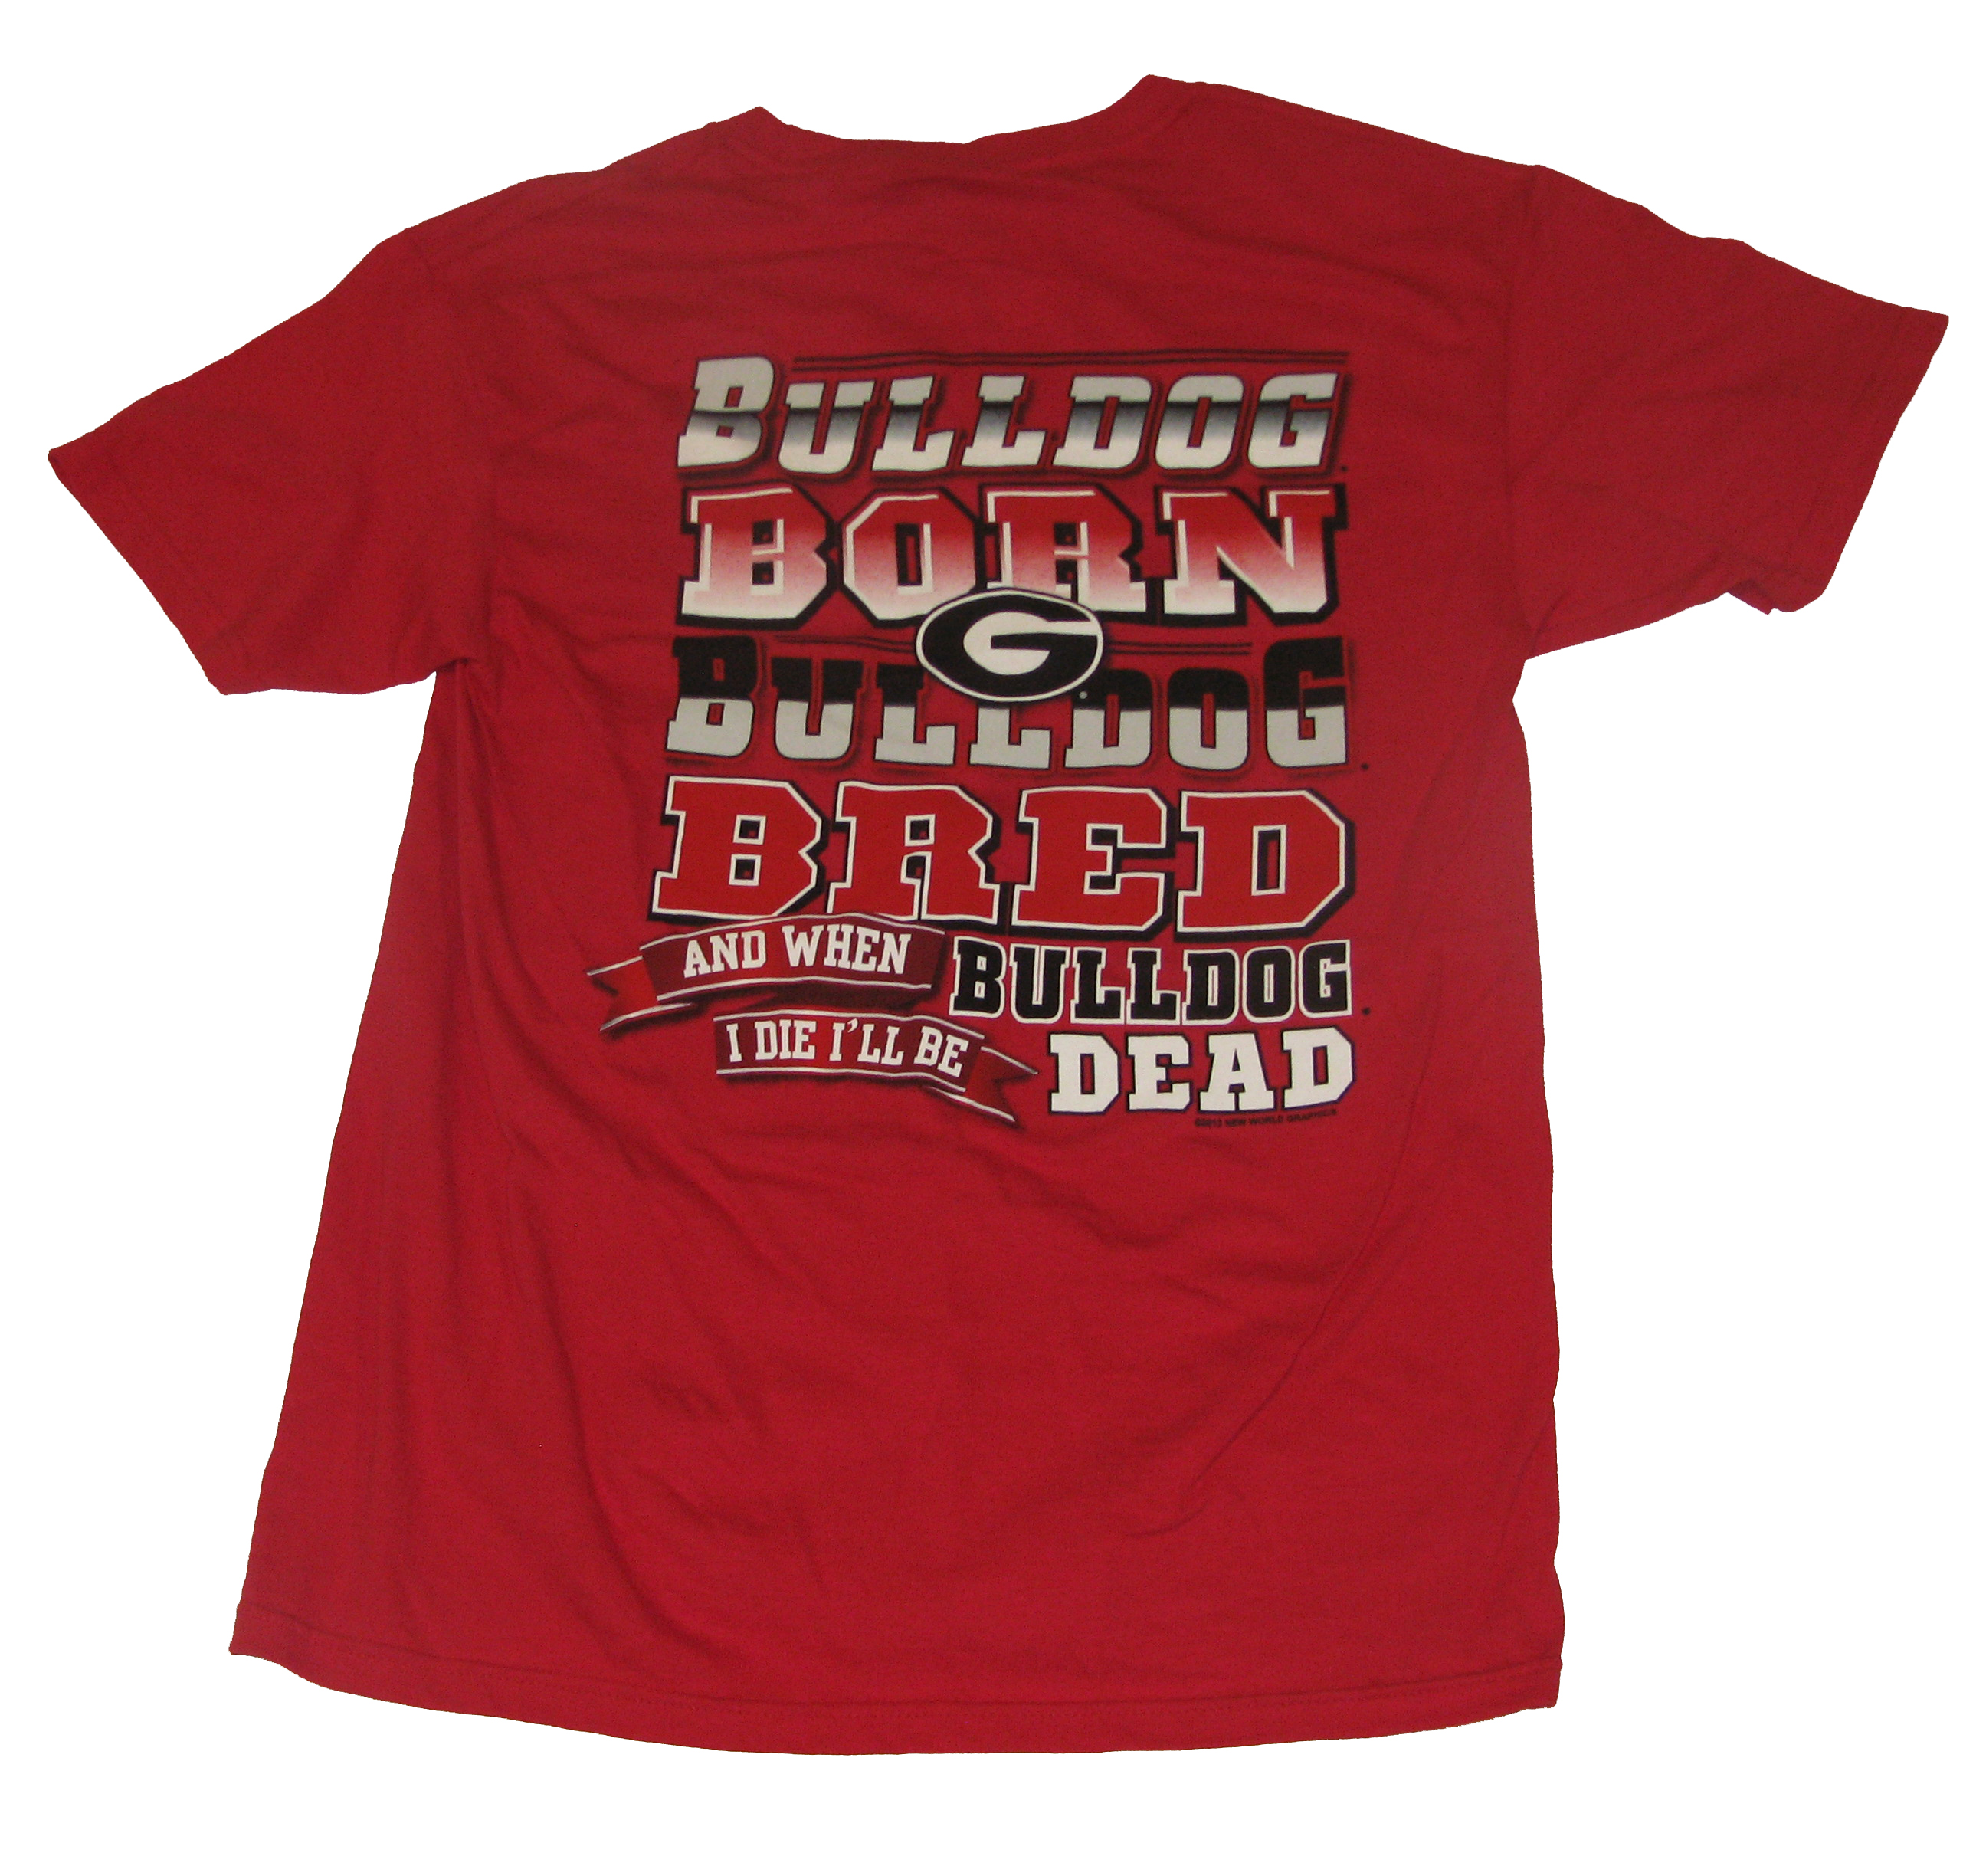 Georgia Bulldogs Bulldog Born Bulldog Bred T-shirt